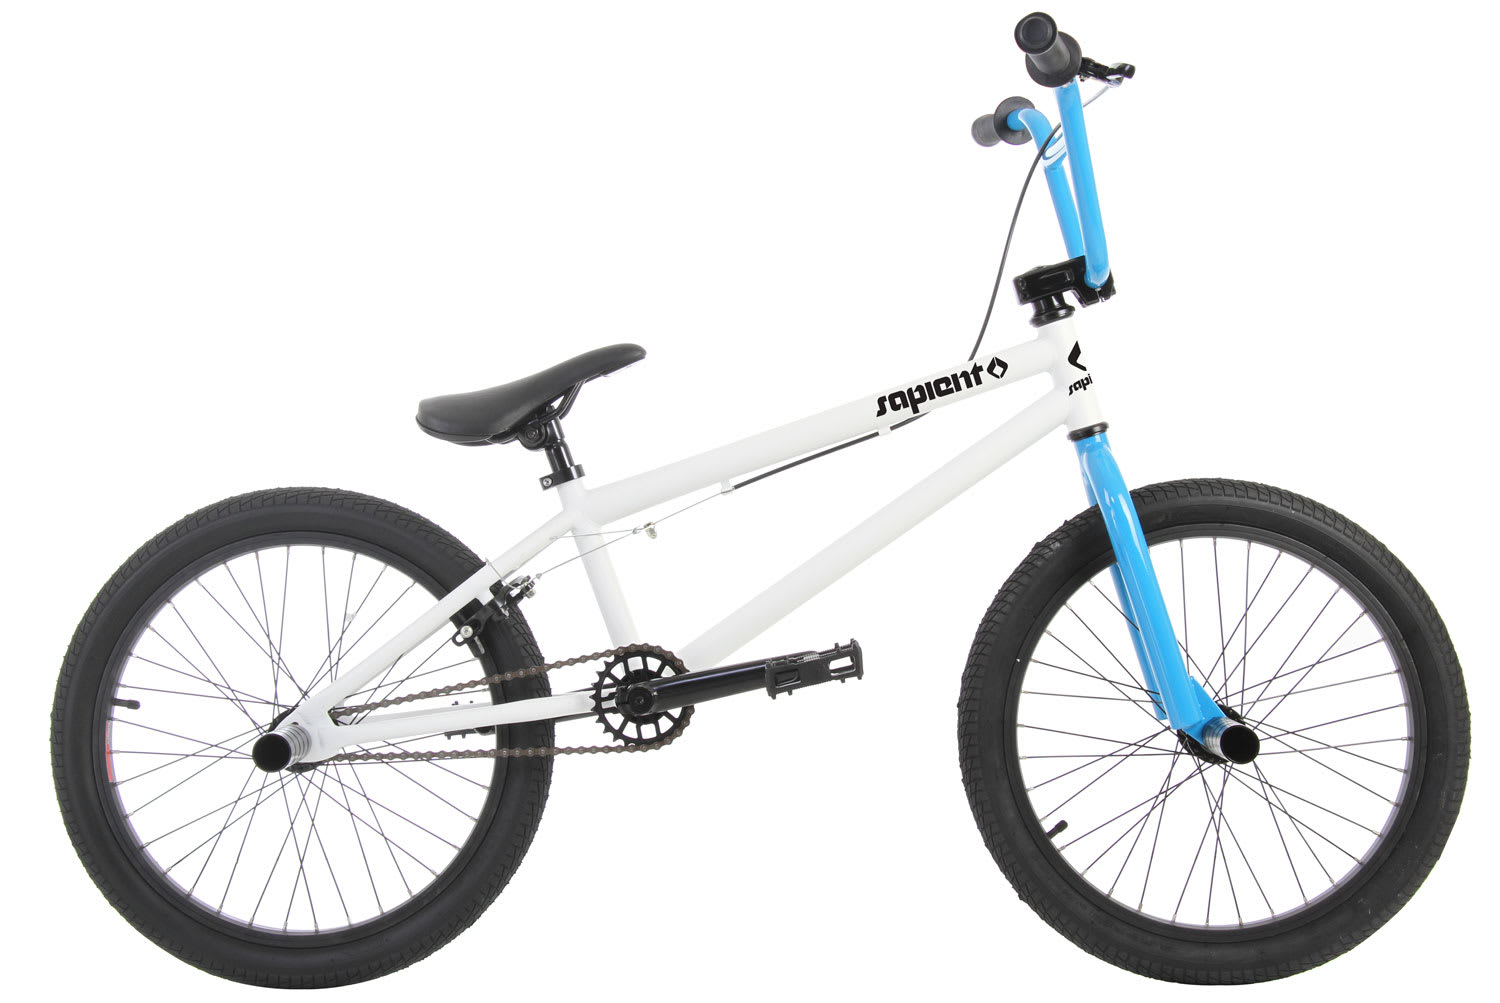 Bmx Bikes For Sale Cheap Sapient Perspica MXIII BMX